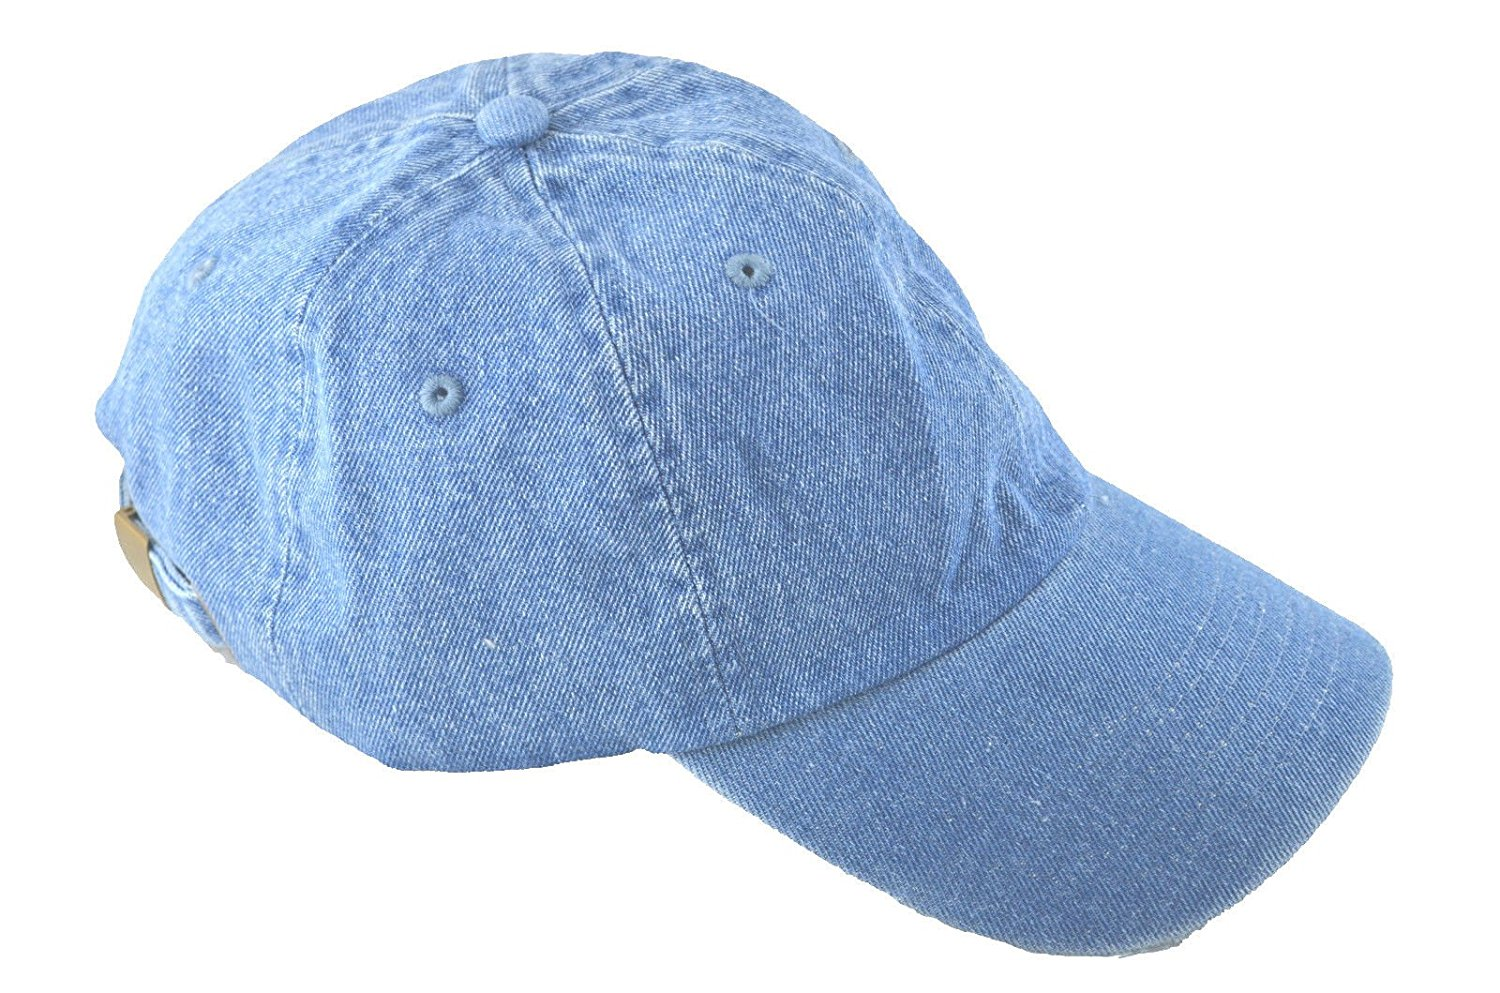 NH Men's Polo Style Adjustable Unstructured Low-profile Baseball Cap Denim Jean